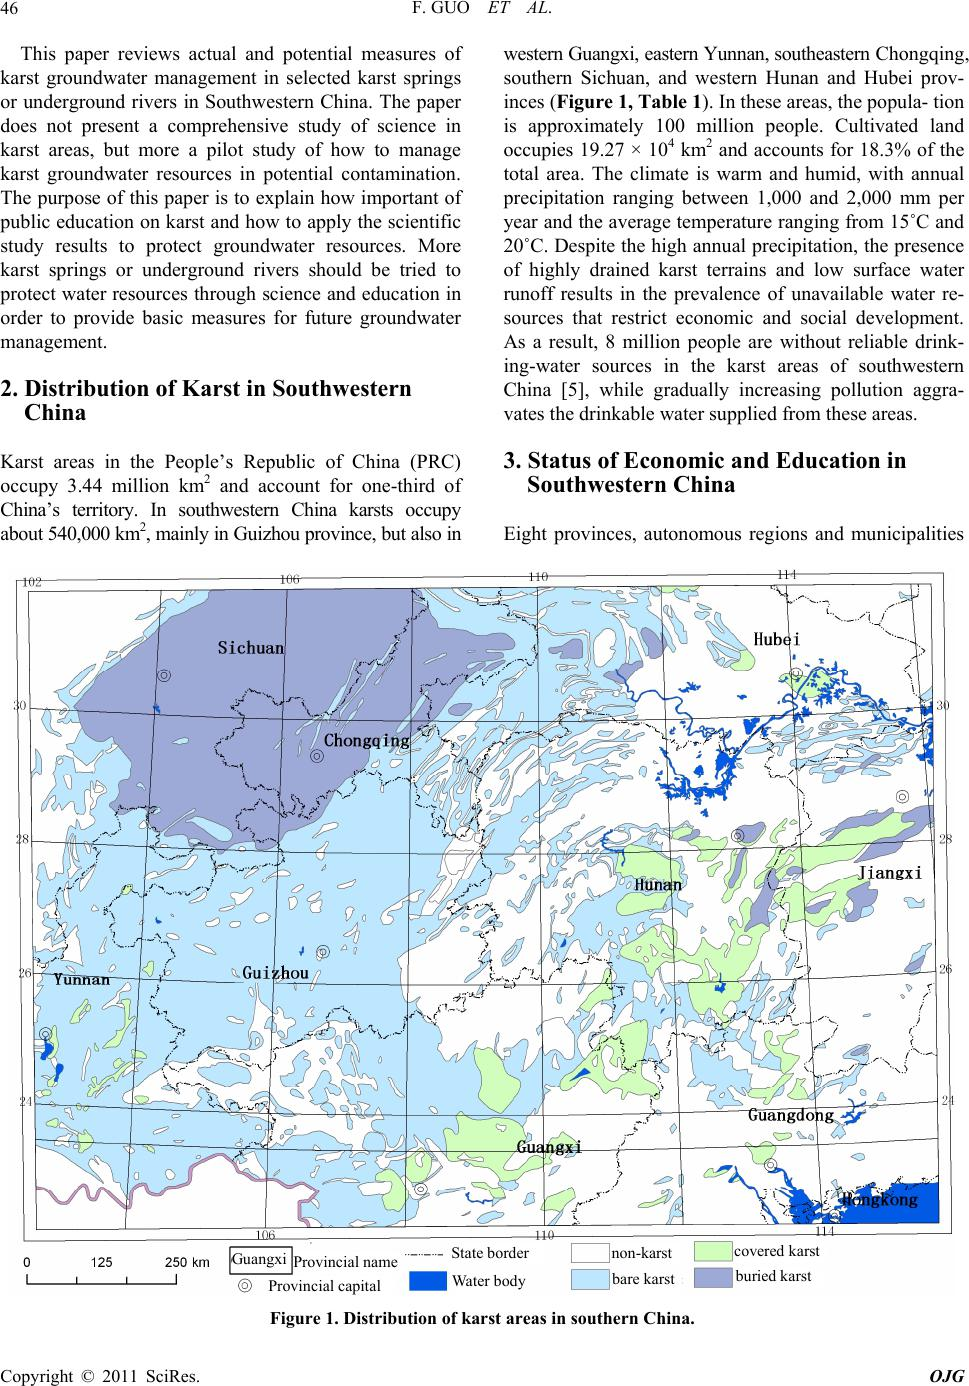 karst thesis Karst aquifer nw arkansas ryan t doucette 68 pages may 2012 this thesis reports the results of a six month thermal investigation that monitored varying groundwater flow paths in a mantled karst aquifer thermal patterns of subsurface.